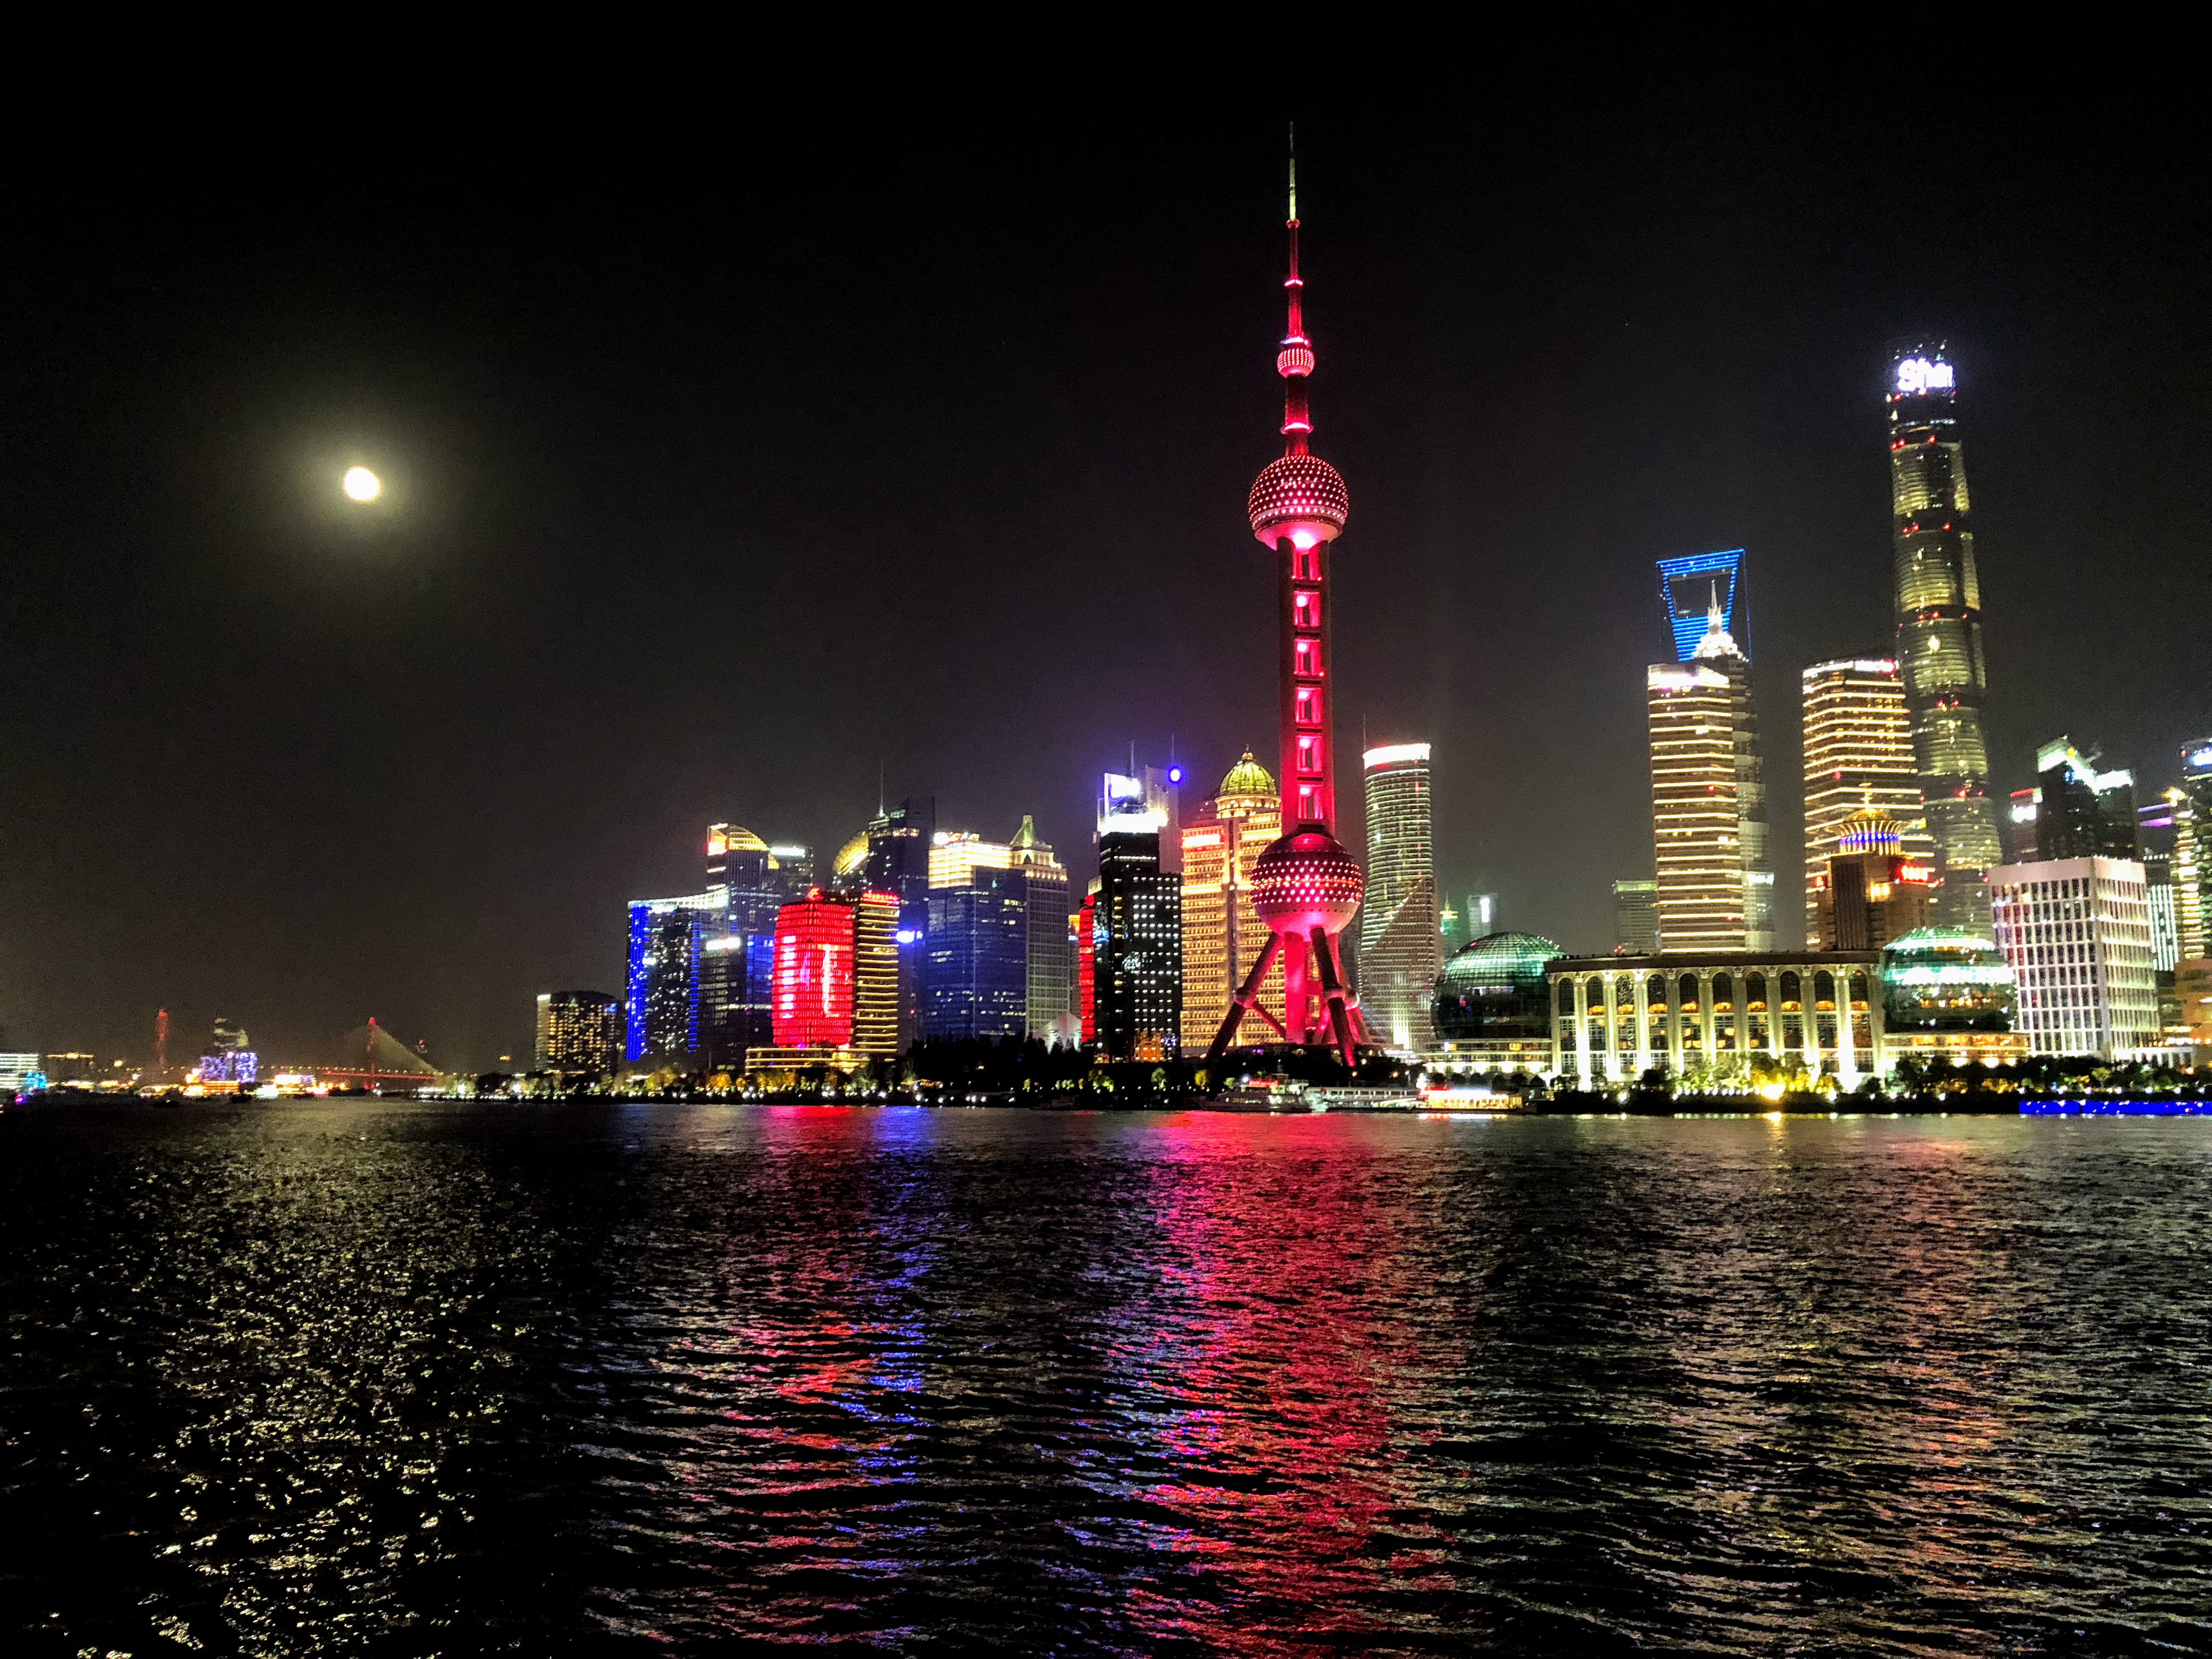 The Pearl Tower, and Shanghai Tower (second tallest in the world at 128 stories), pictured from across the Huangpu River on a full moon in Shanghai, China.